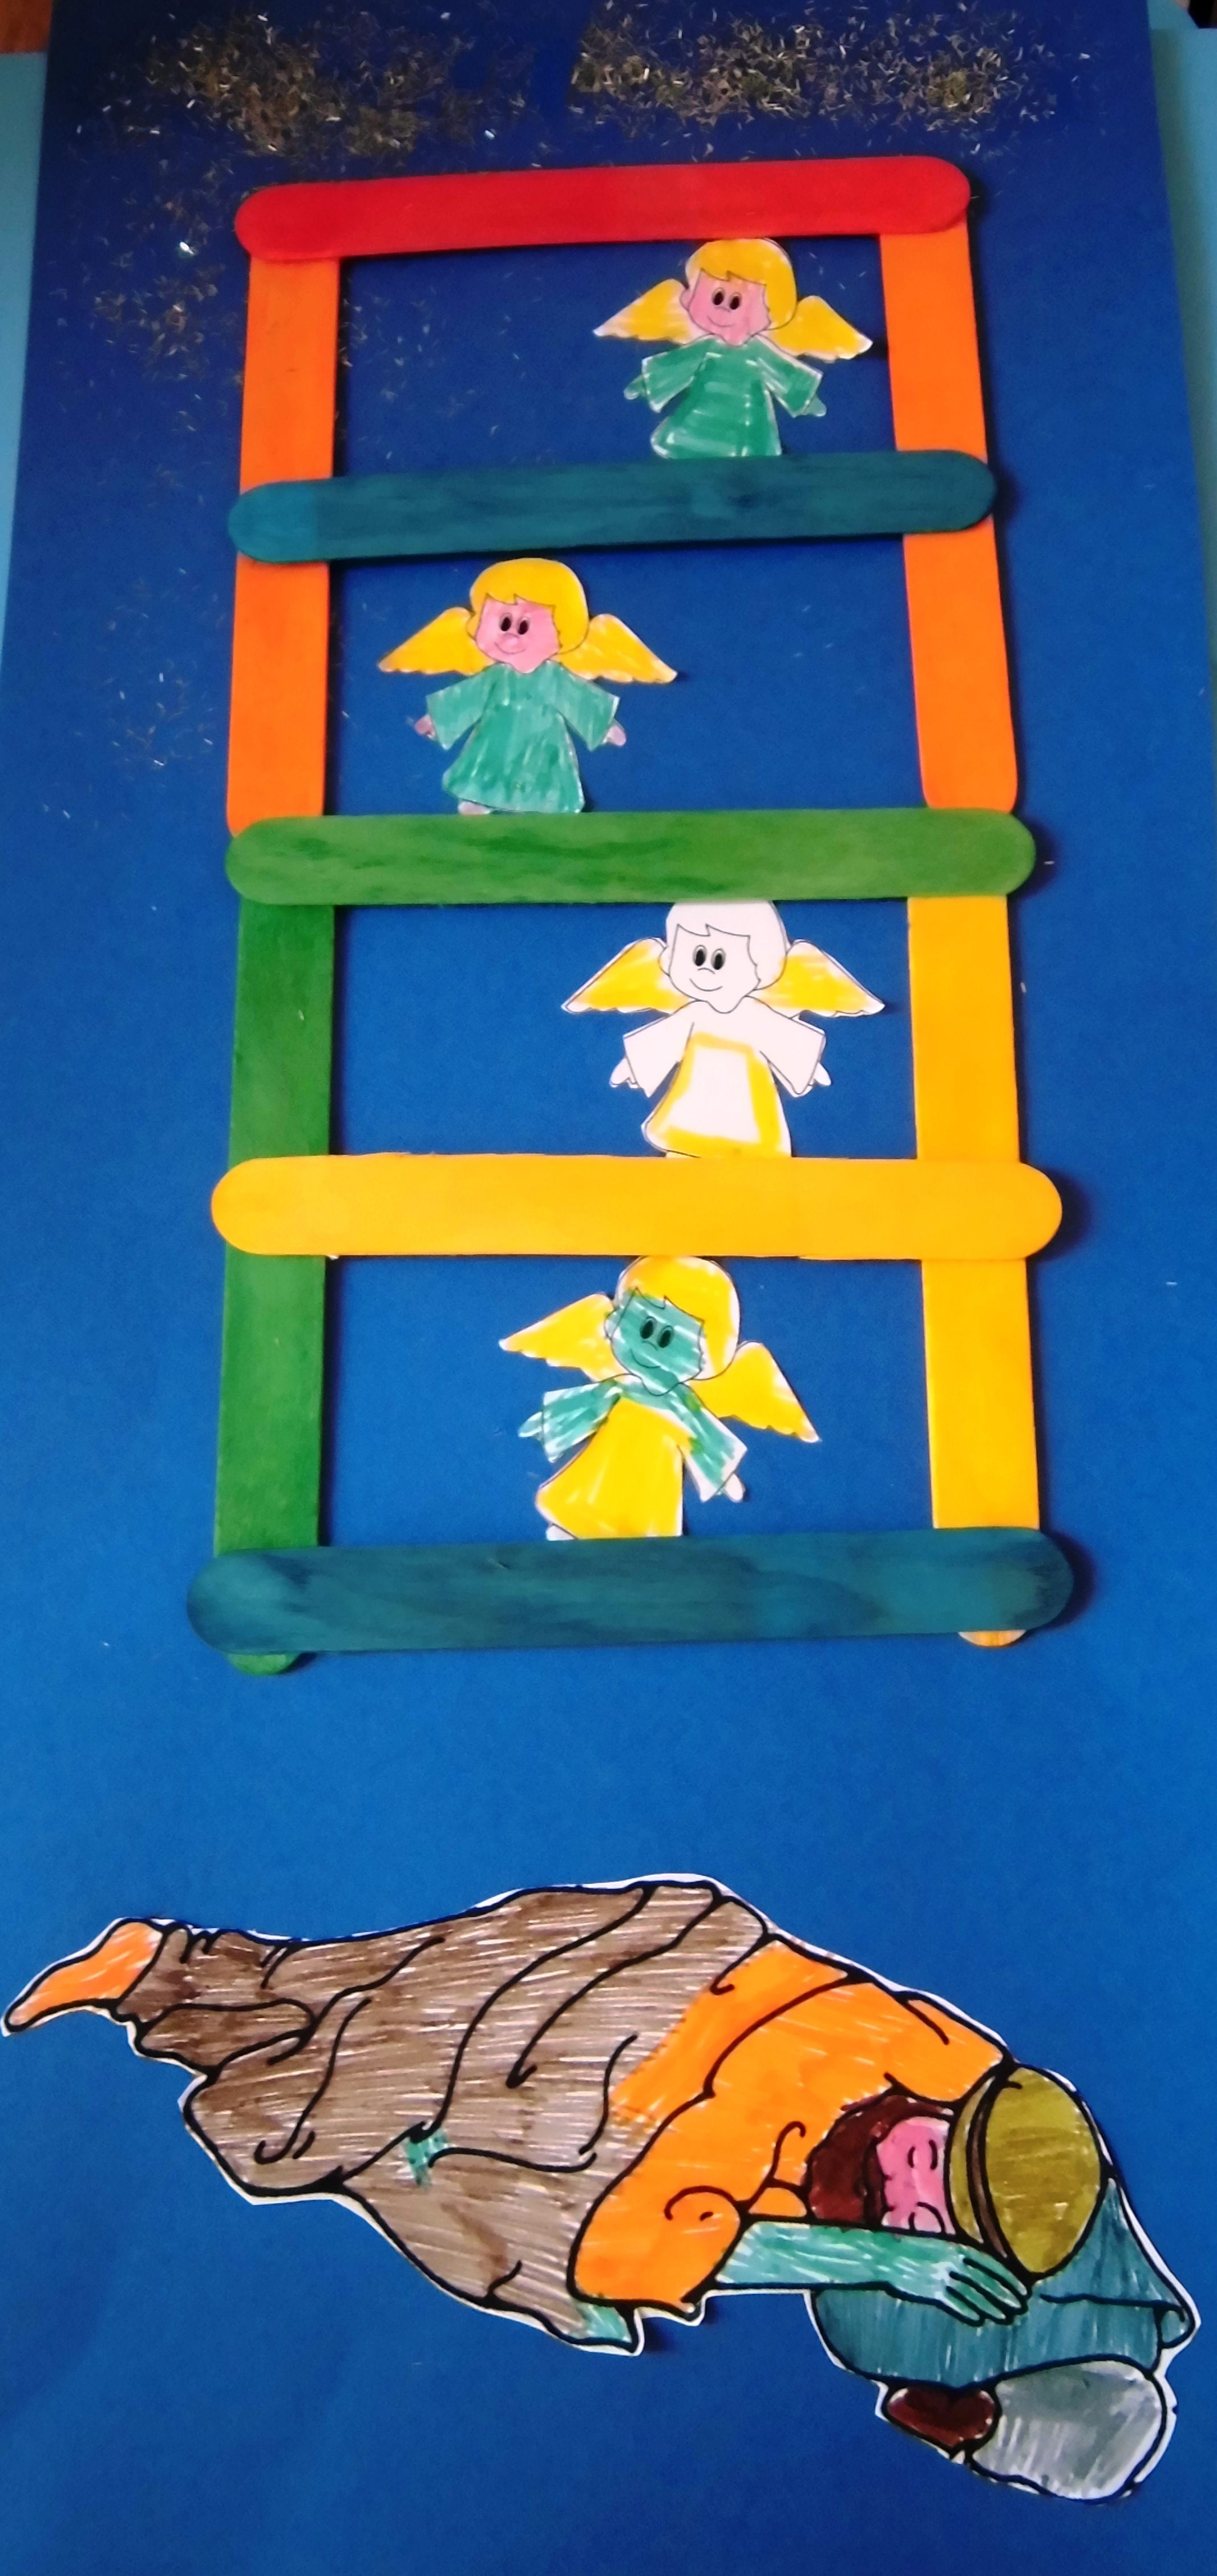 Bible craft for preschoolers - Find This Pin And More On Selfmade Crafts Of The Bible